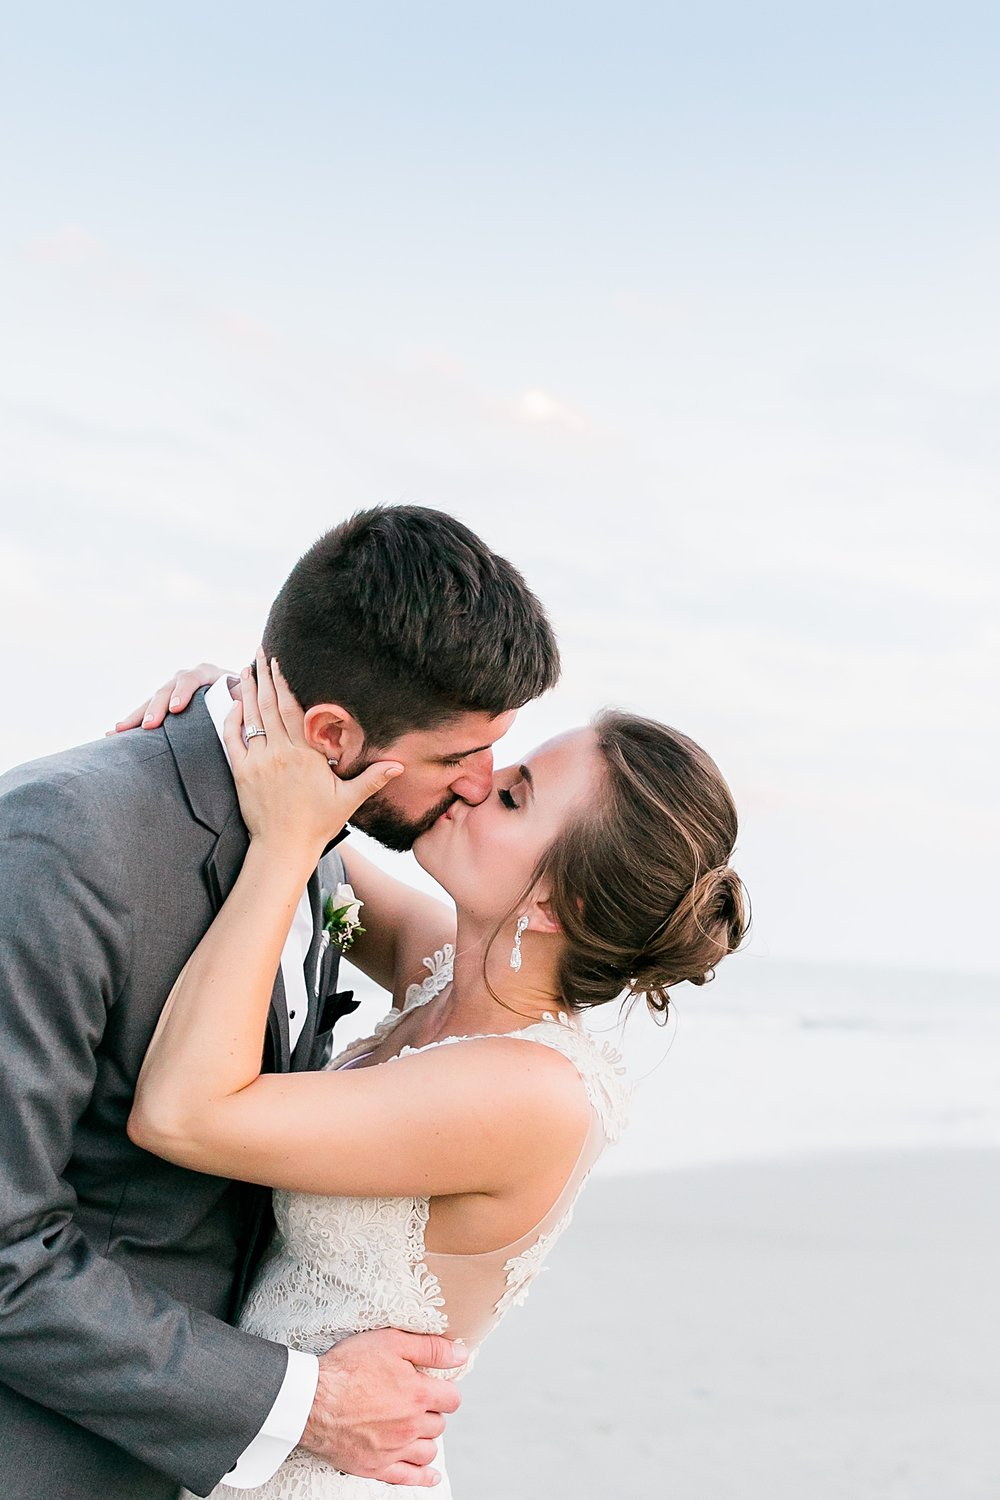 hilton-head-island-wedding-photographer-westin-jb-marie-photography